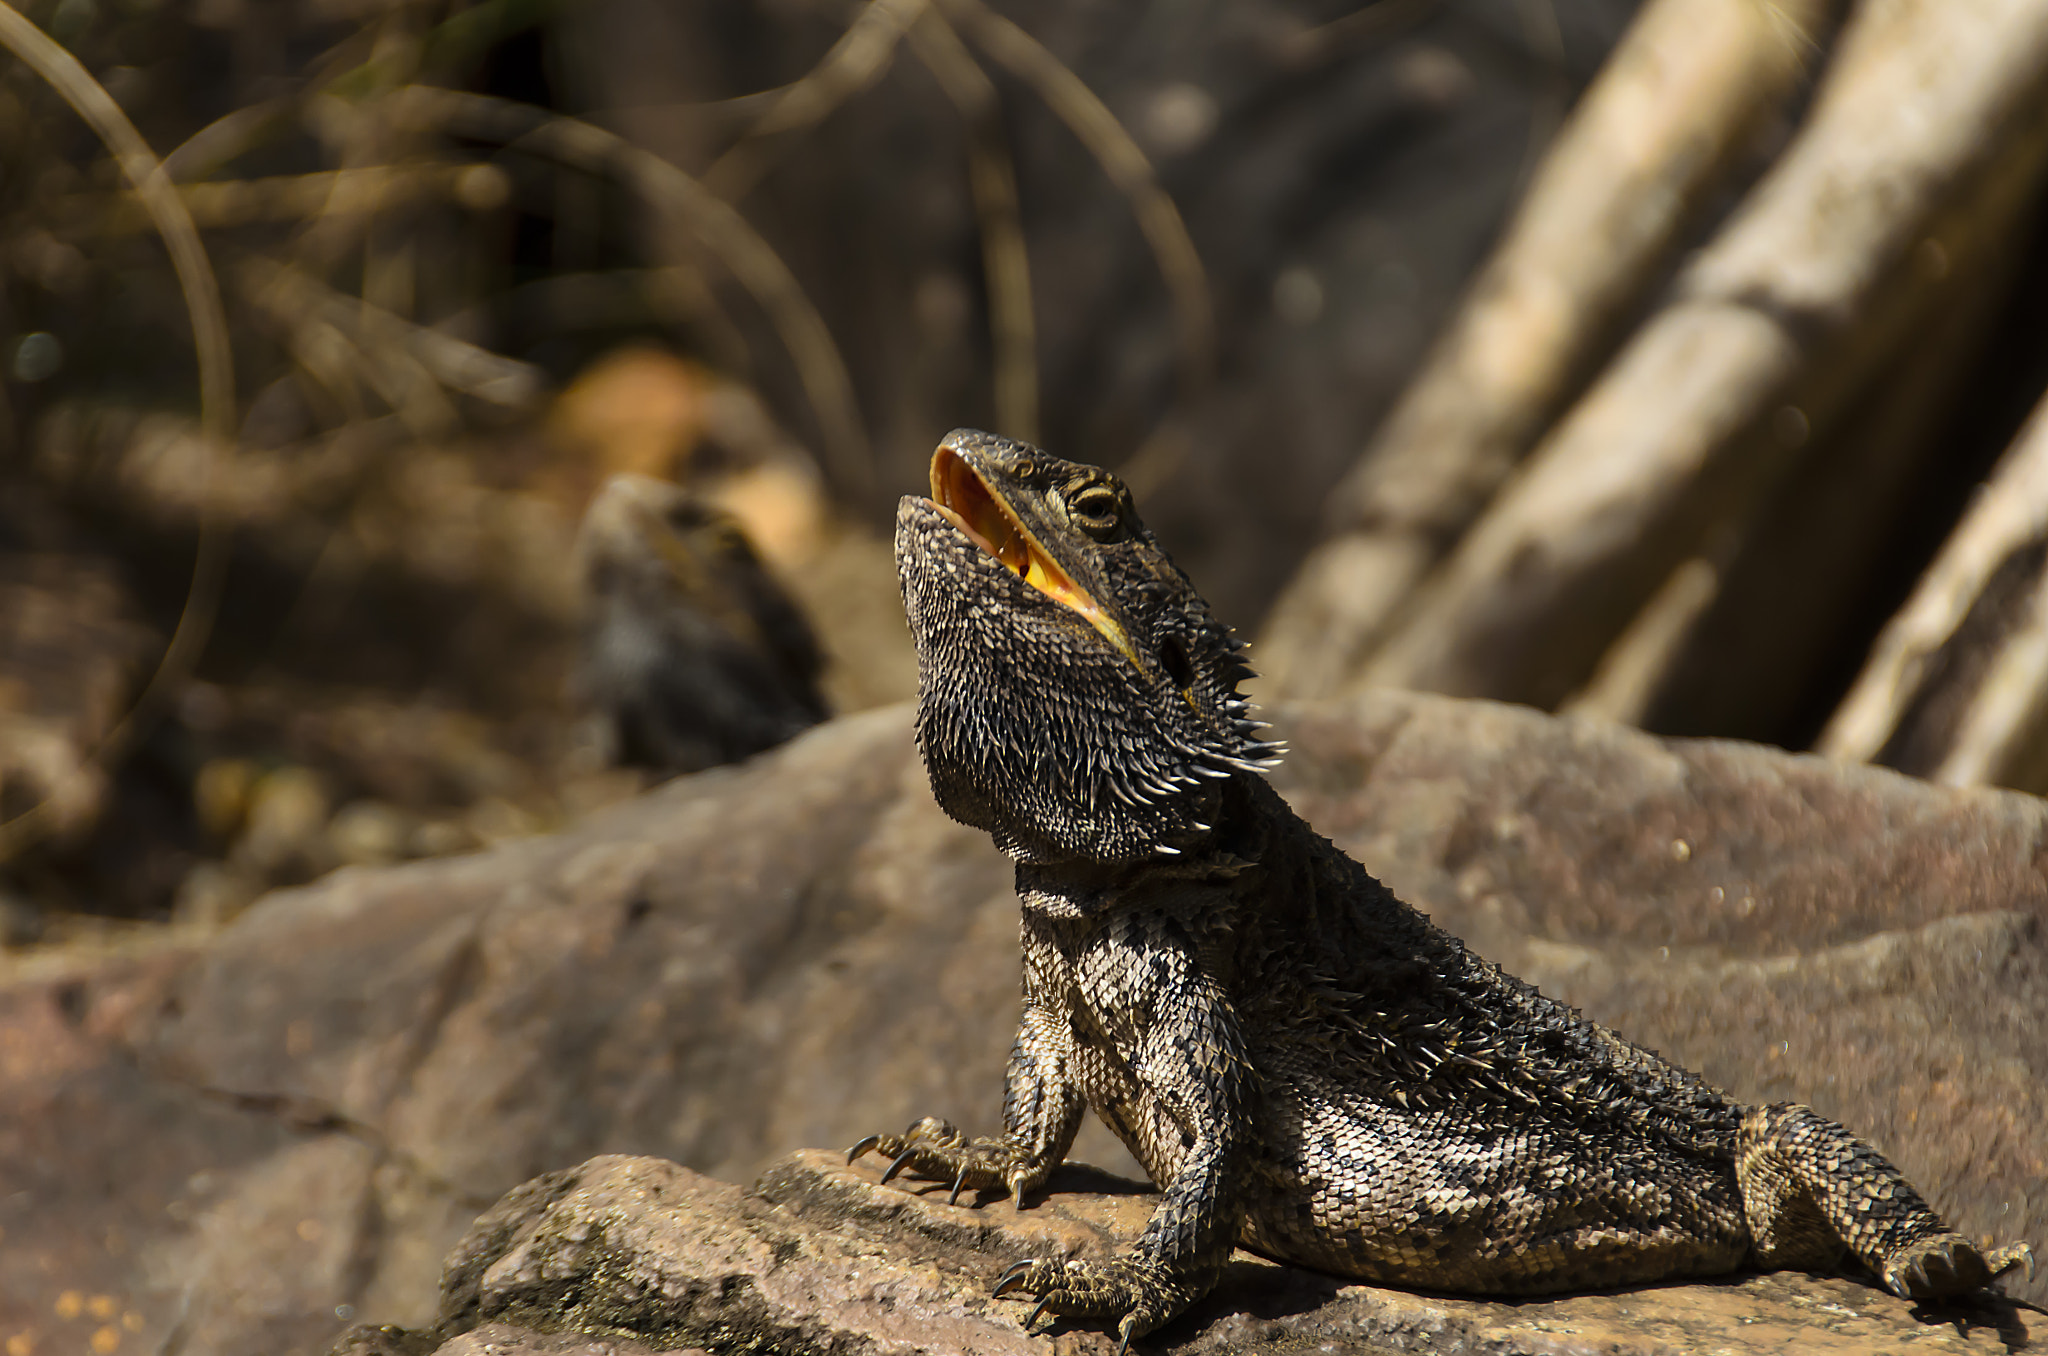 Photograph Bearded Dragon by Martijn Barendregt on 500px